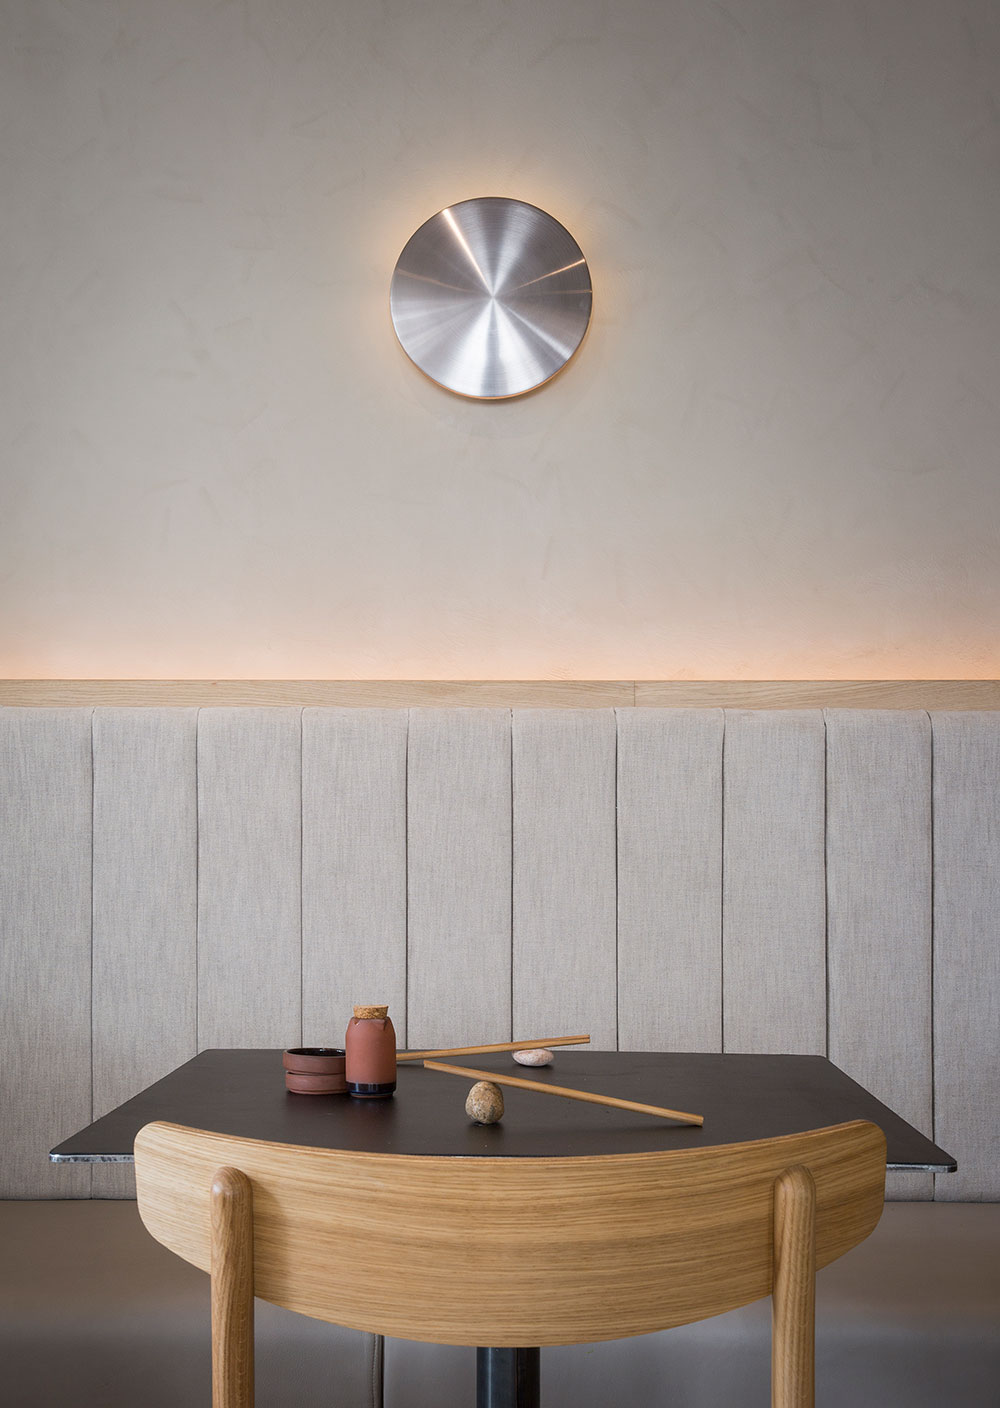 Scandinavian and Japanese aesthetics at London's new Sticks 'n' Sushi restaurant